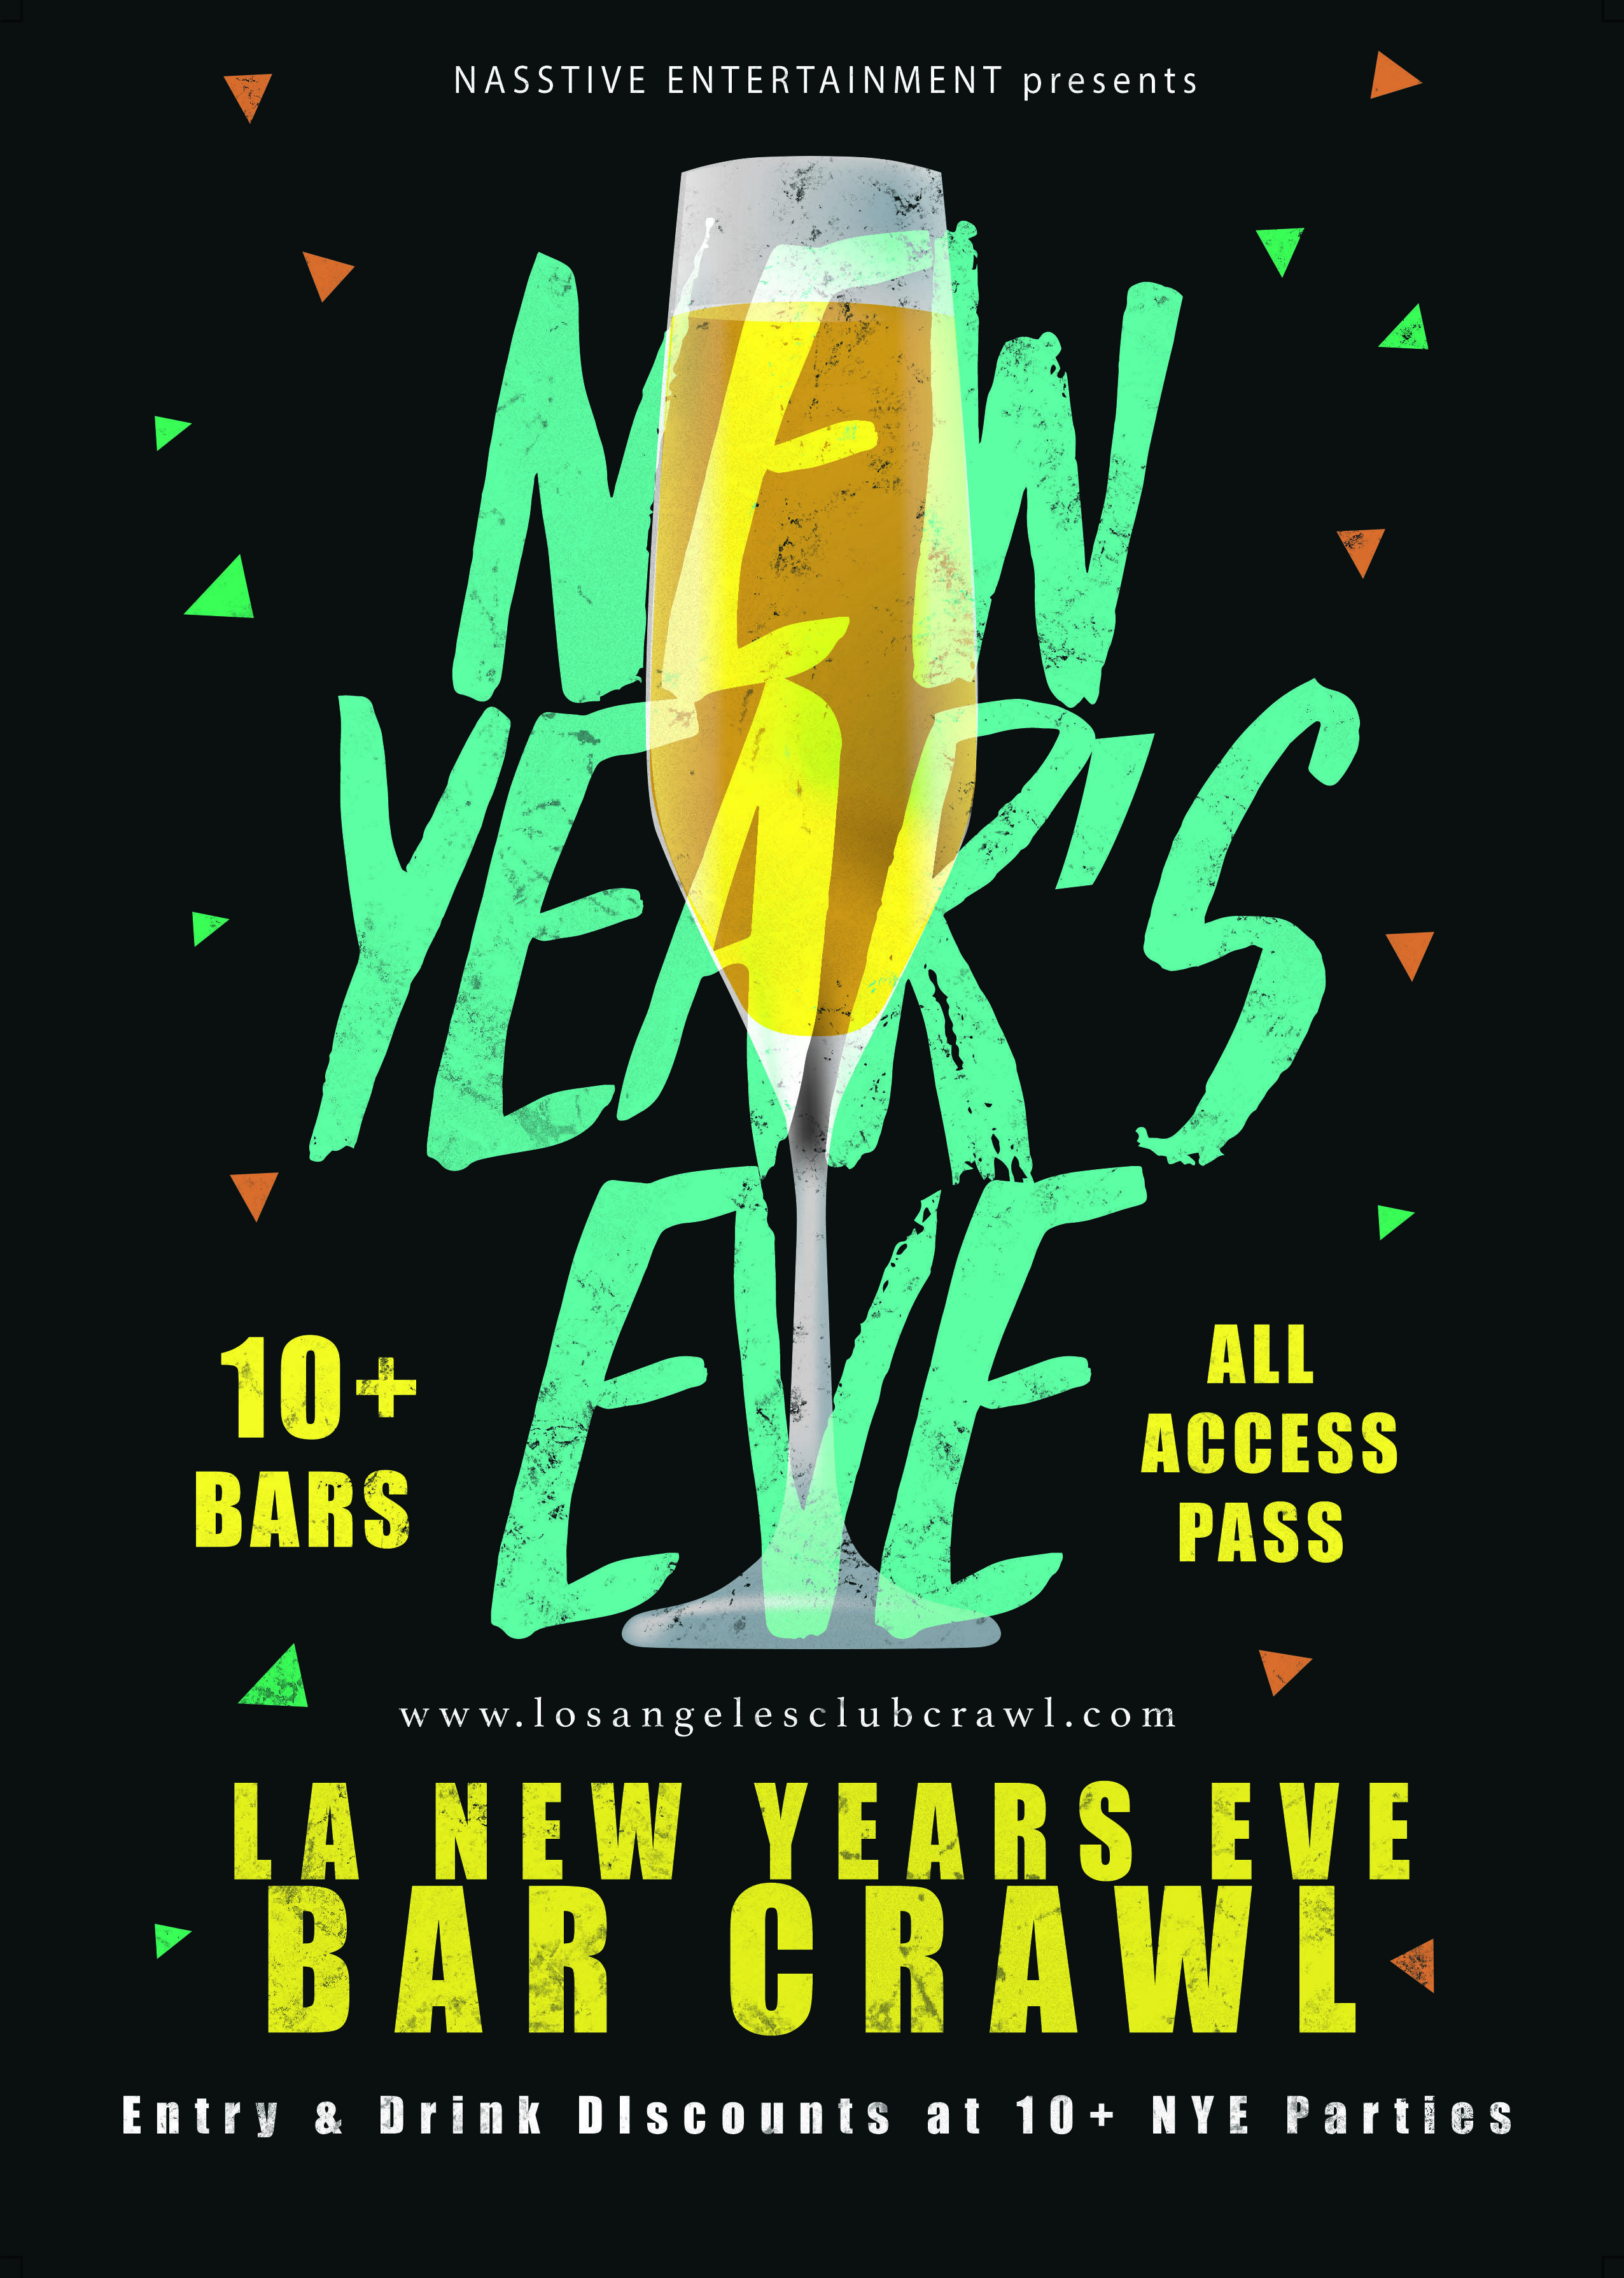 New Years Eve 2019 Los Angeles Bar Crawl - NYE All Access Pass to 10+ Venues